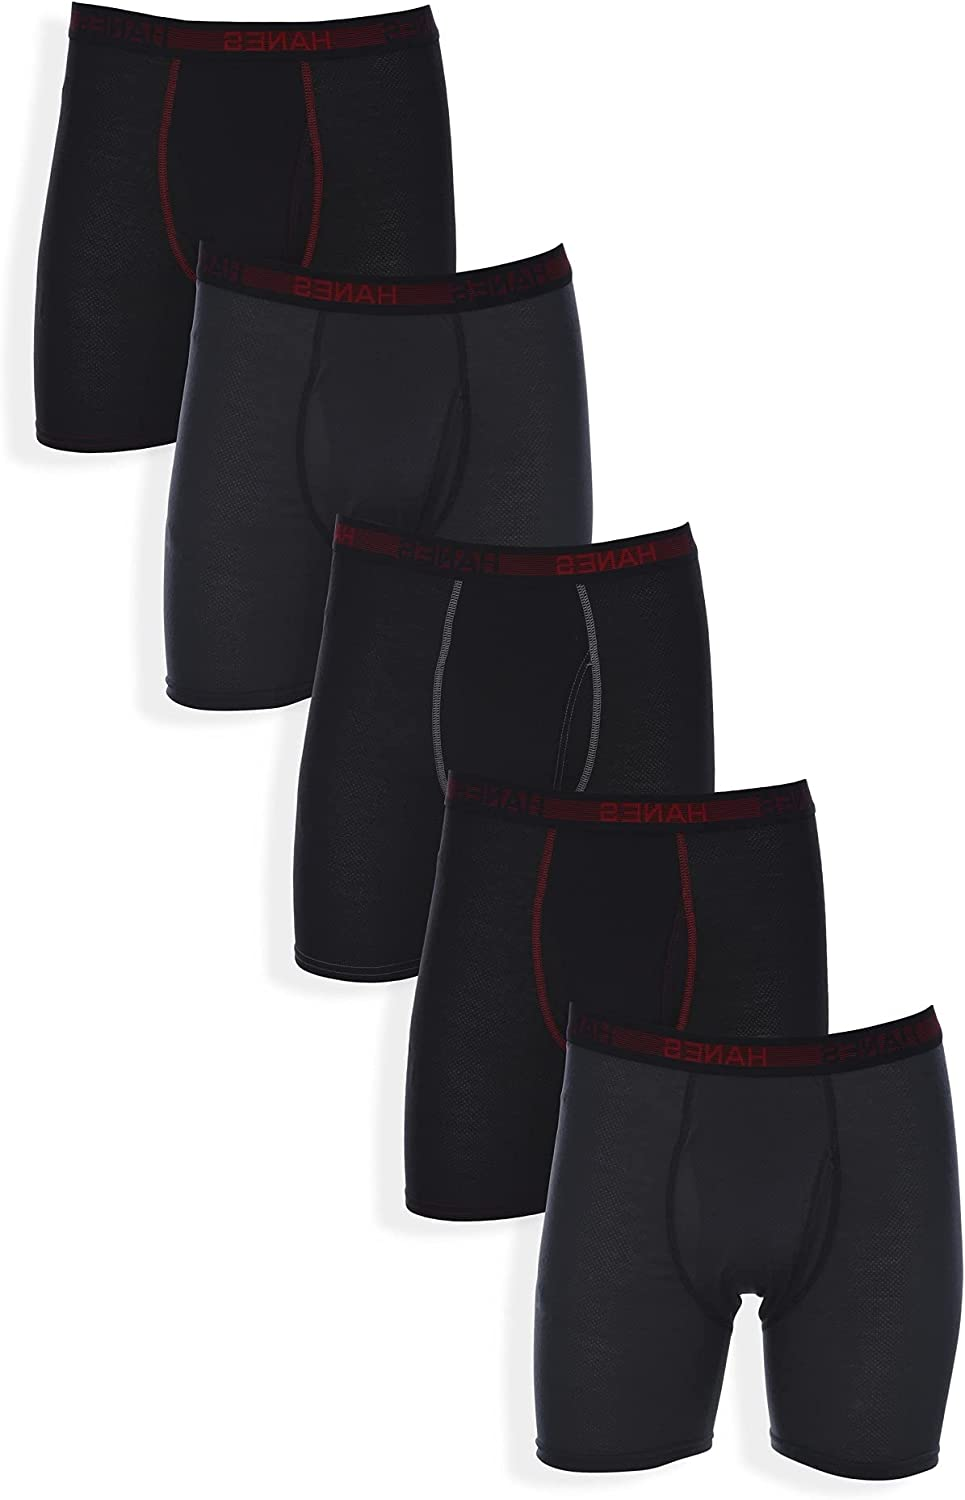 Hanes mens Sport Pack FreshIQ boxer briefs, Assorted Sport Breathable Mesh, X-Large US